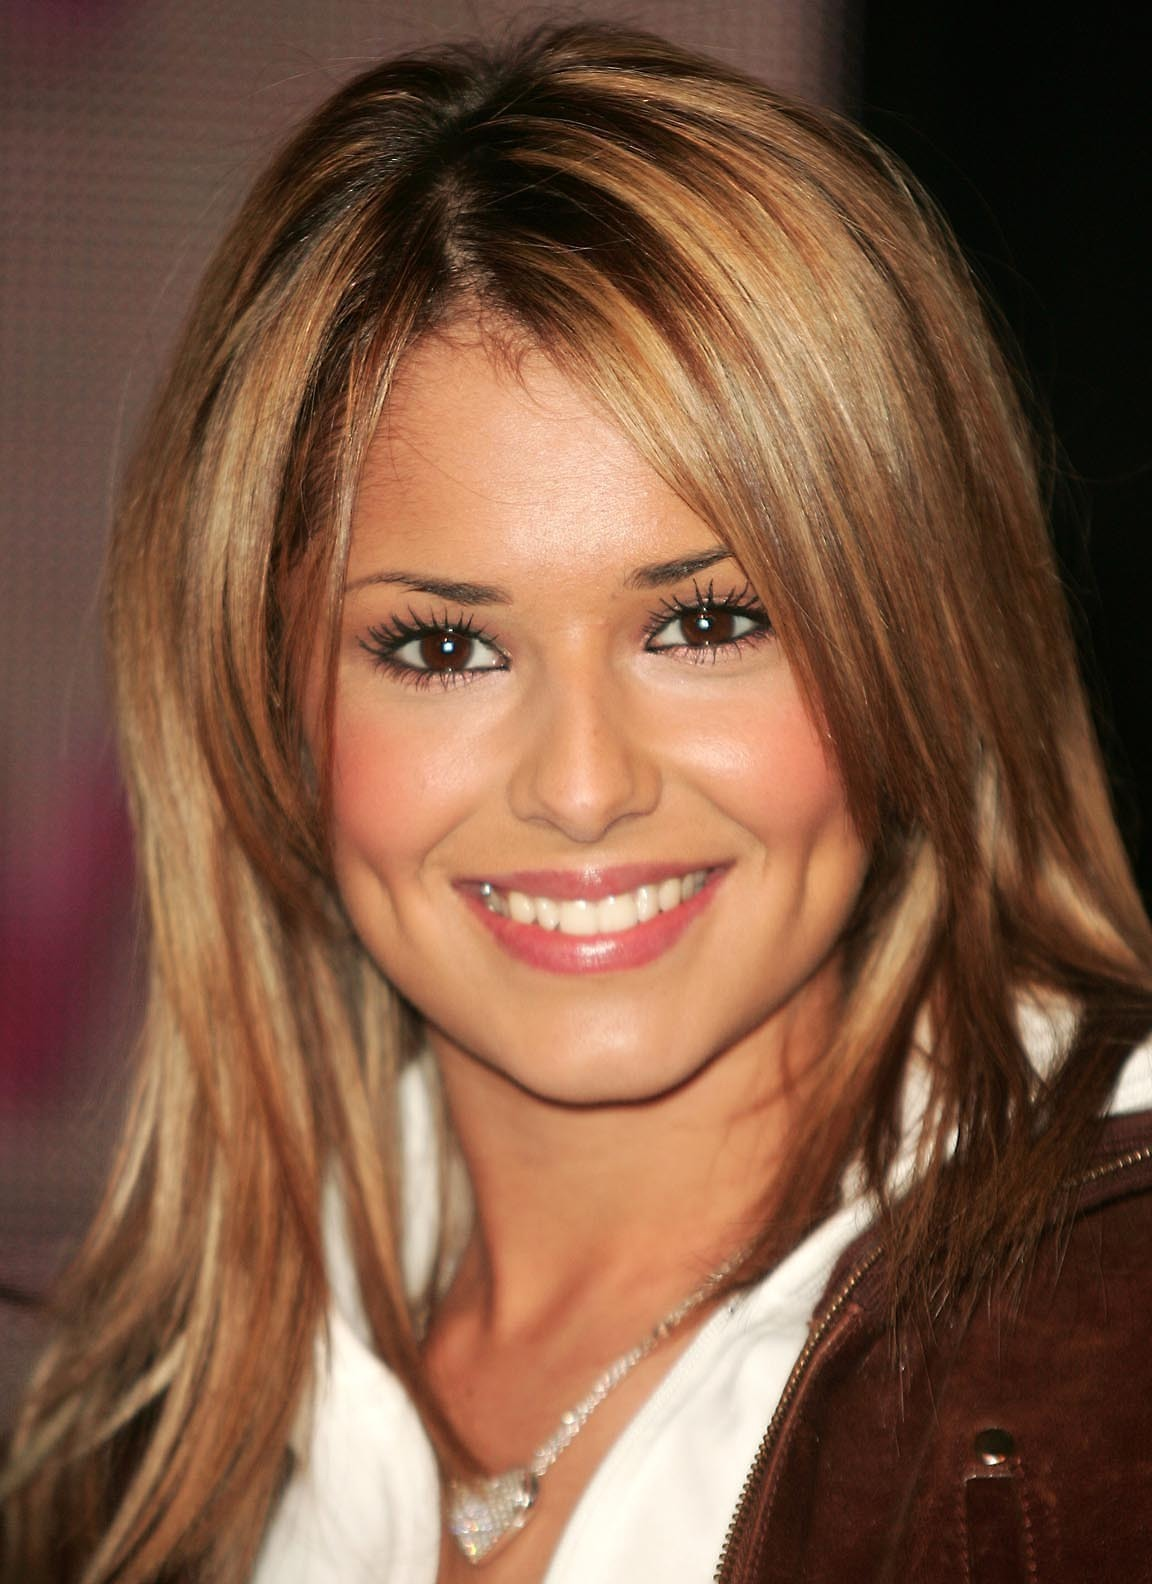 Cheryl Cole Cheryl Cole Photo 4578570 Fanpop